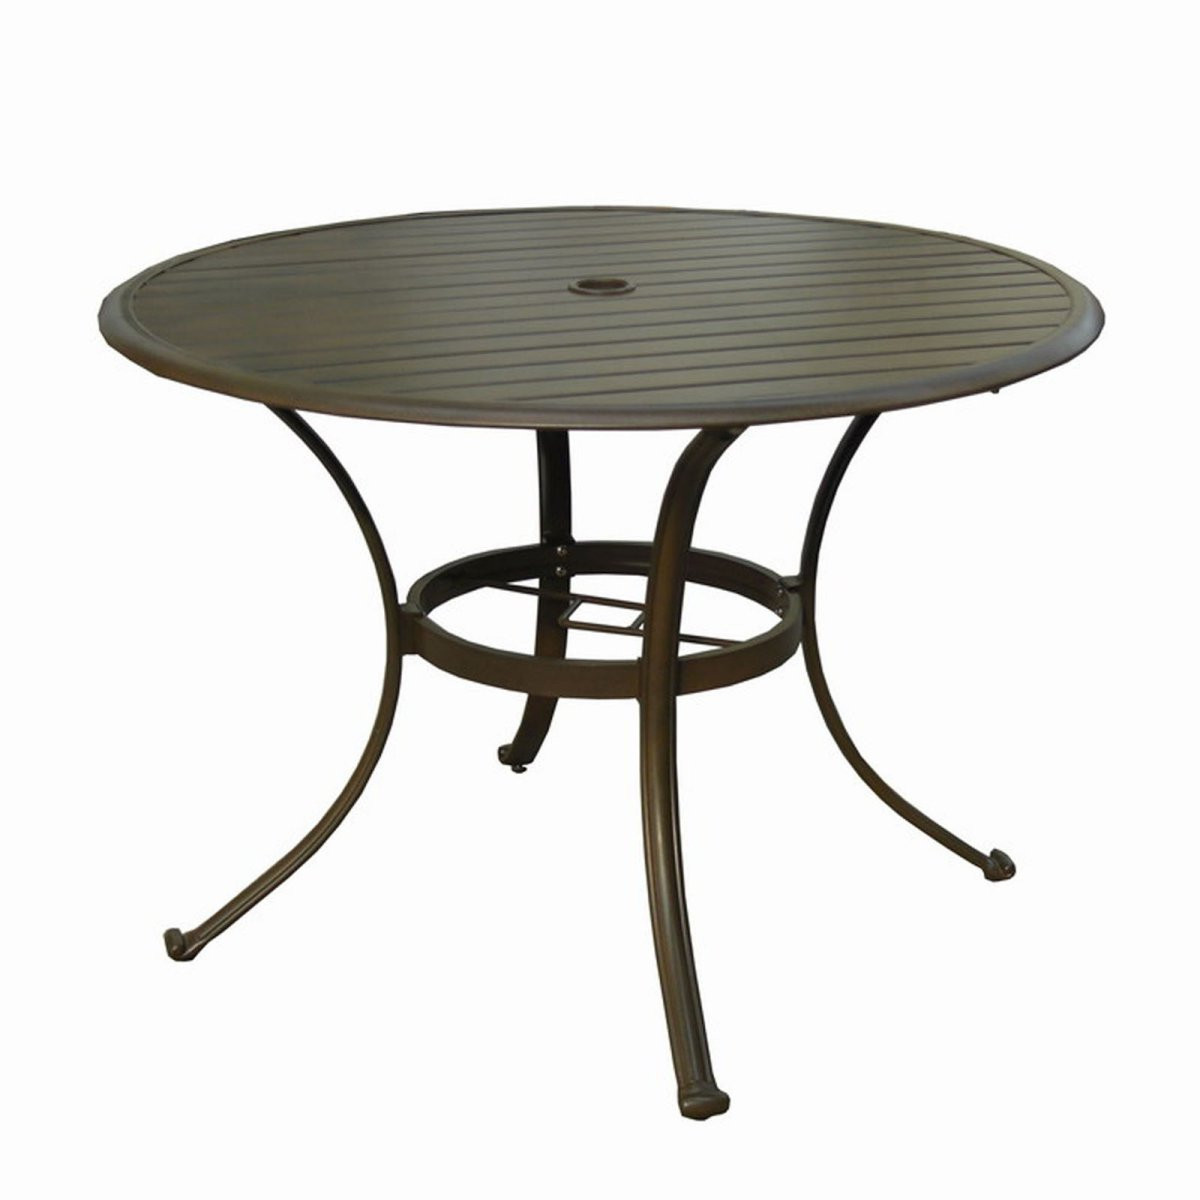 Best ideas about Outdoor Coffee Table . Save or Pin Outdoor Coffee Table With Umbrella Hole Design Now.